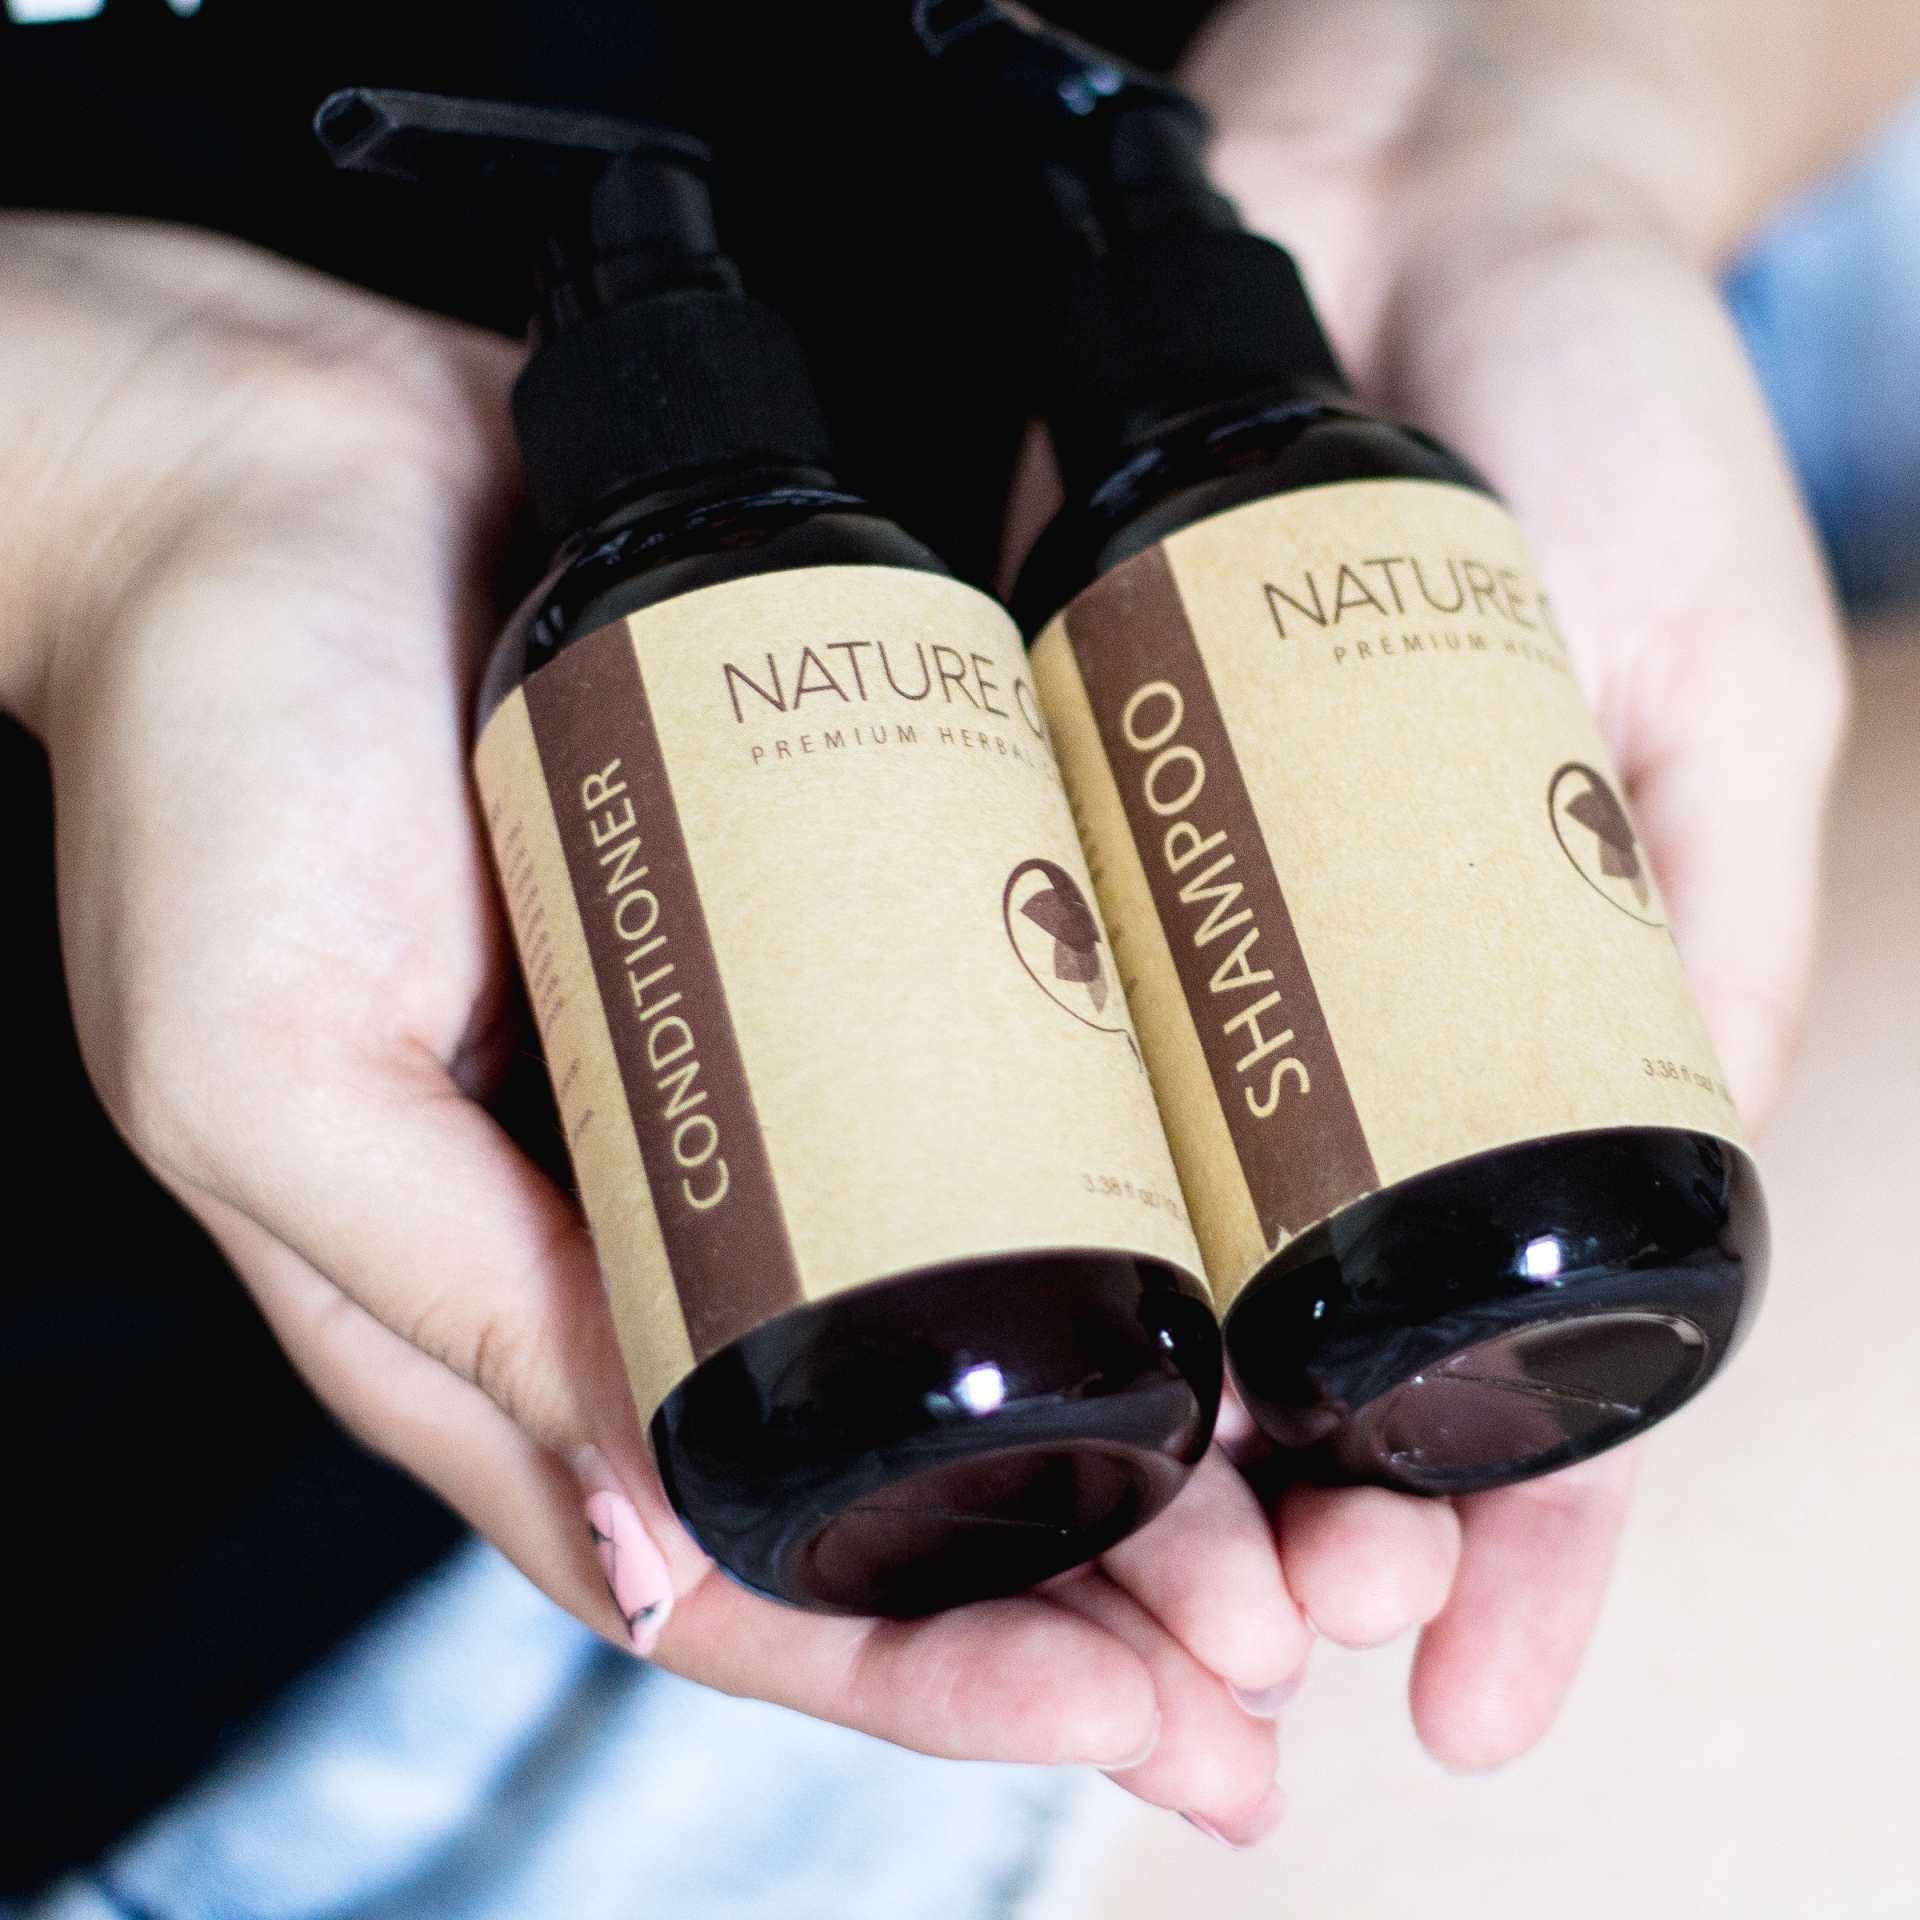 Nature-Queen-Herbal-Shampoo-and-Conditioner